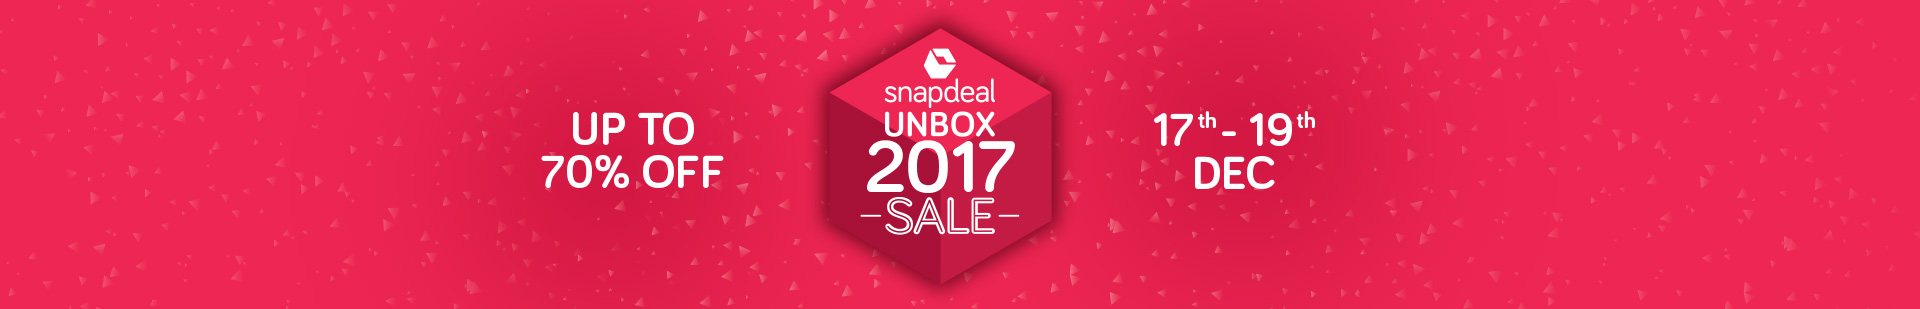 Snapdeal Unbox 2017 Sale – Up to 70% Off | 17-19 Dec @ Snapdeal – Electronics